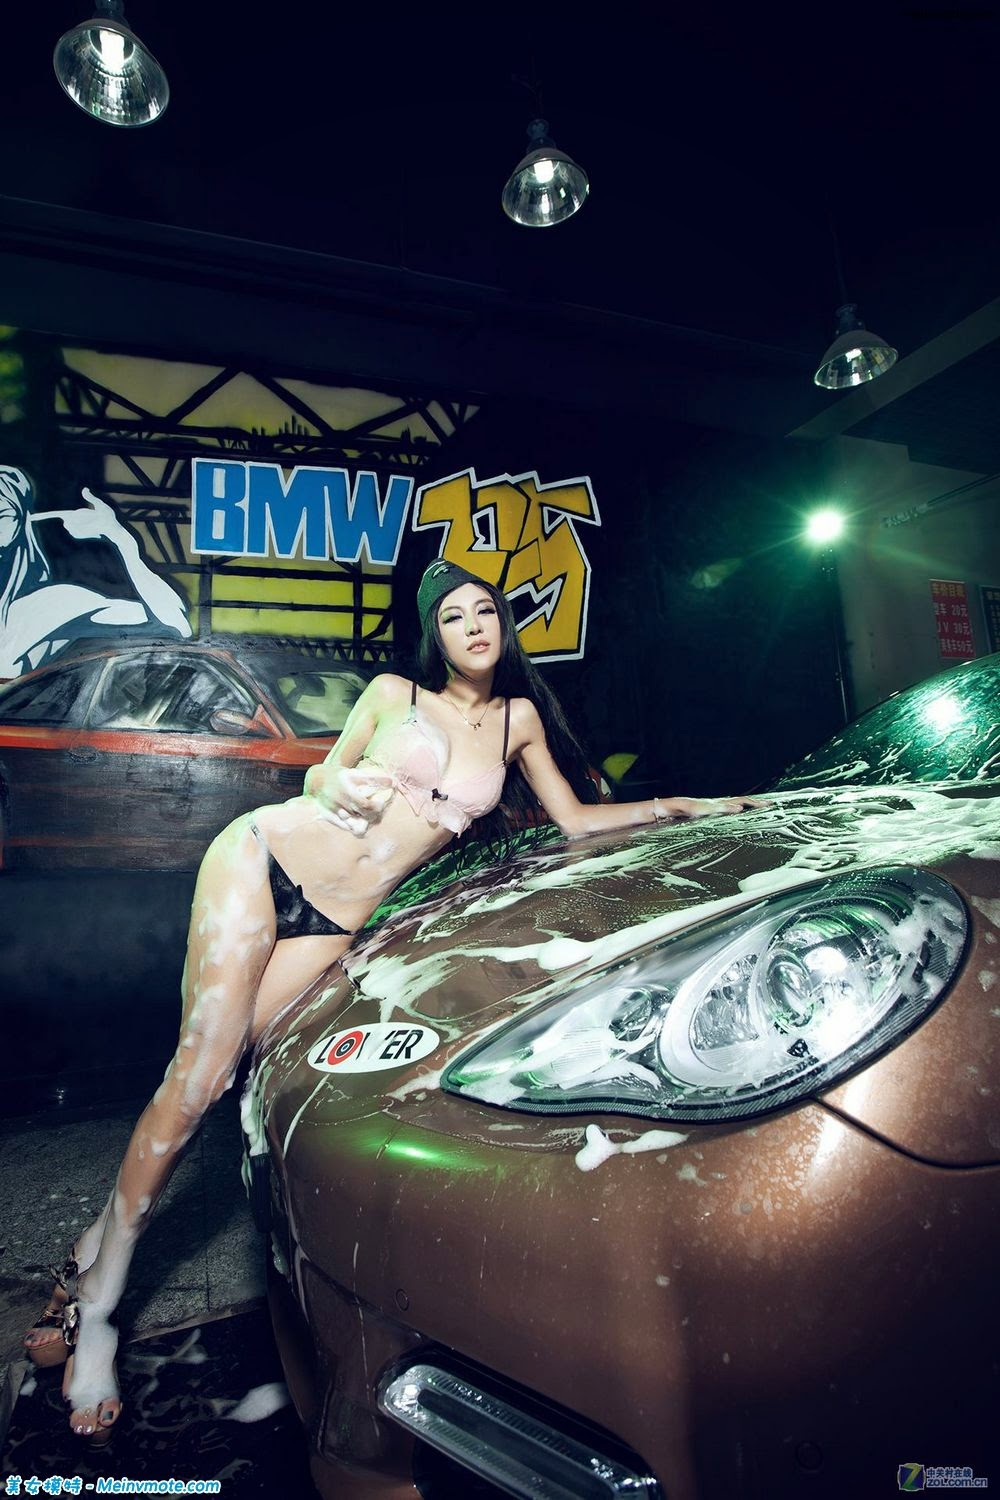 Just a small Greek bikini car wash coquettish pose